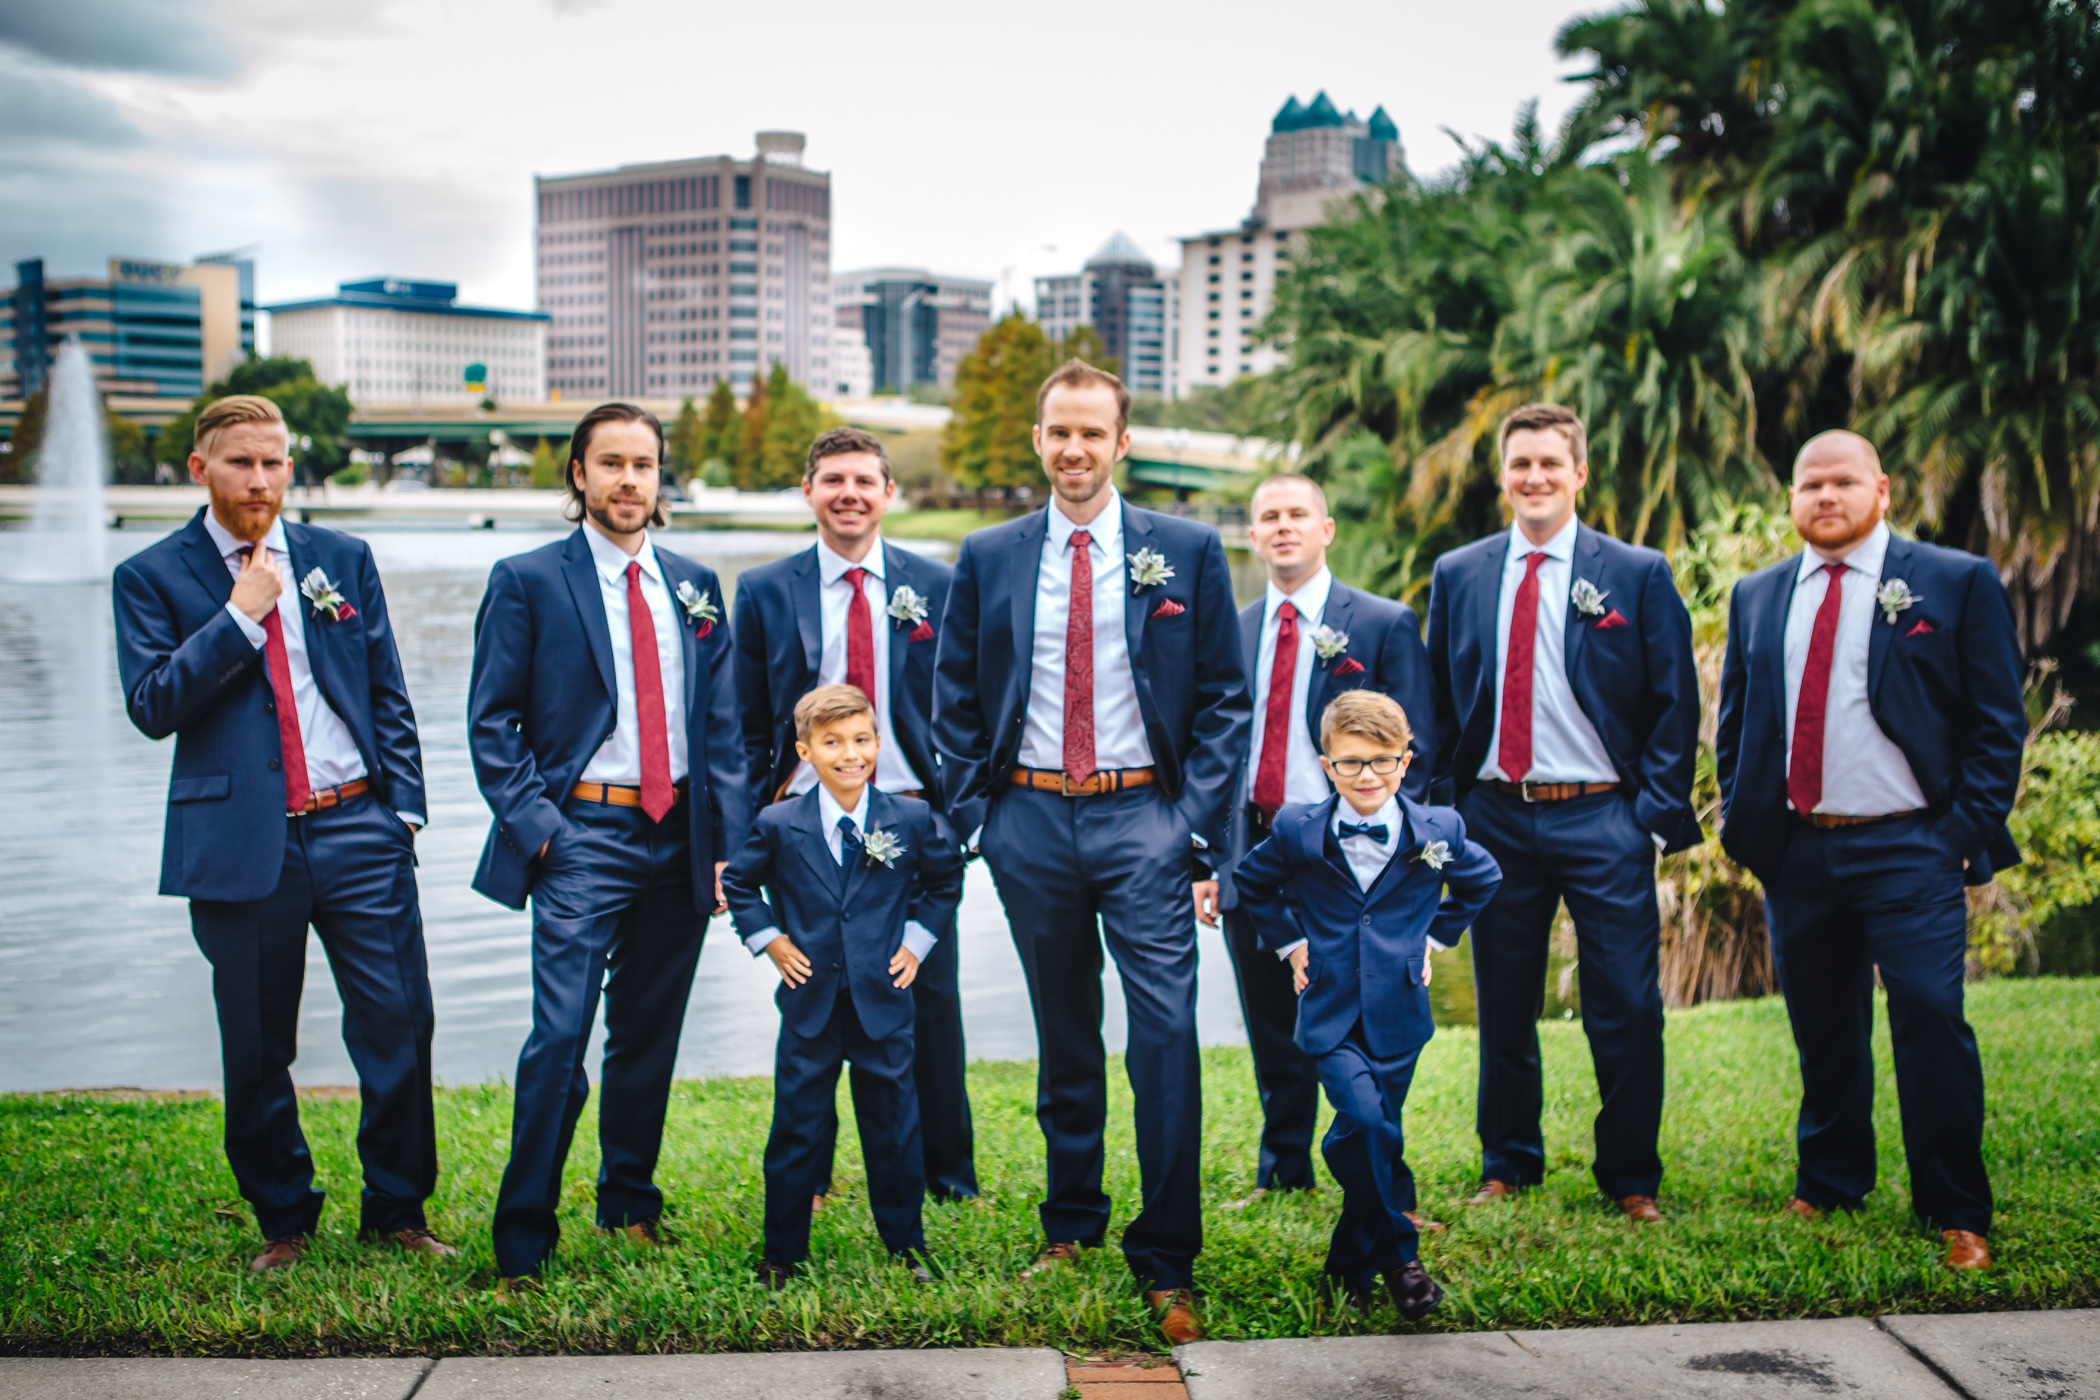 Downtown Orlando Wedding at Lake Lucerne Christmas Theme Red Dress Navy Suits 087.jpg